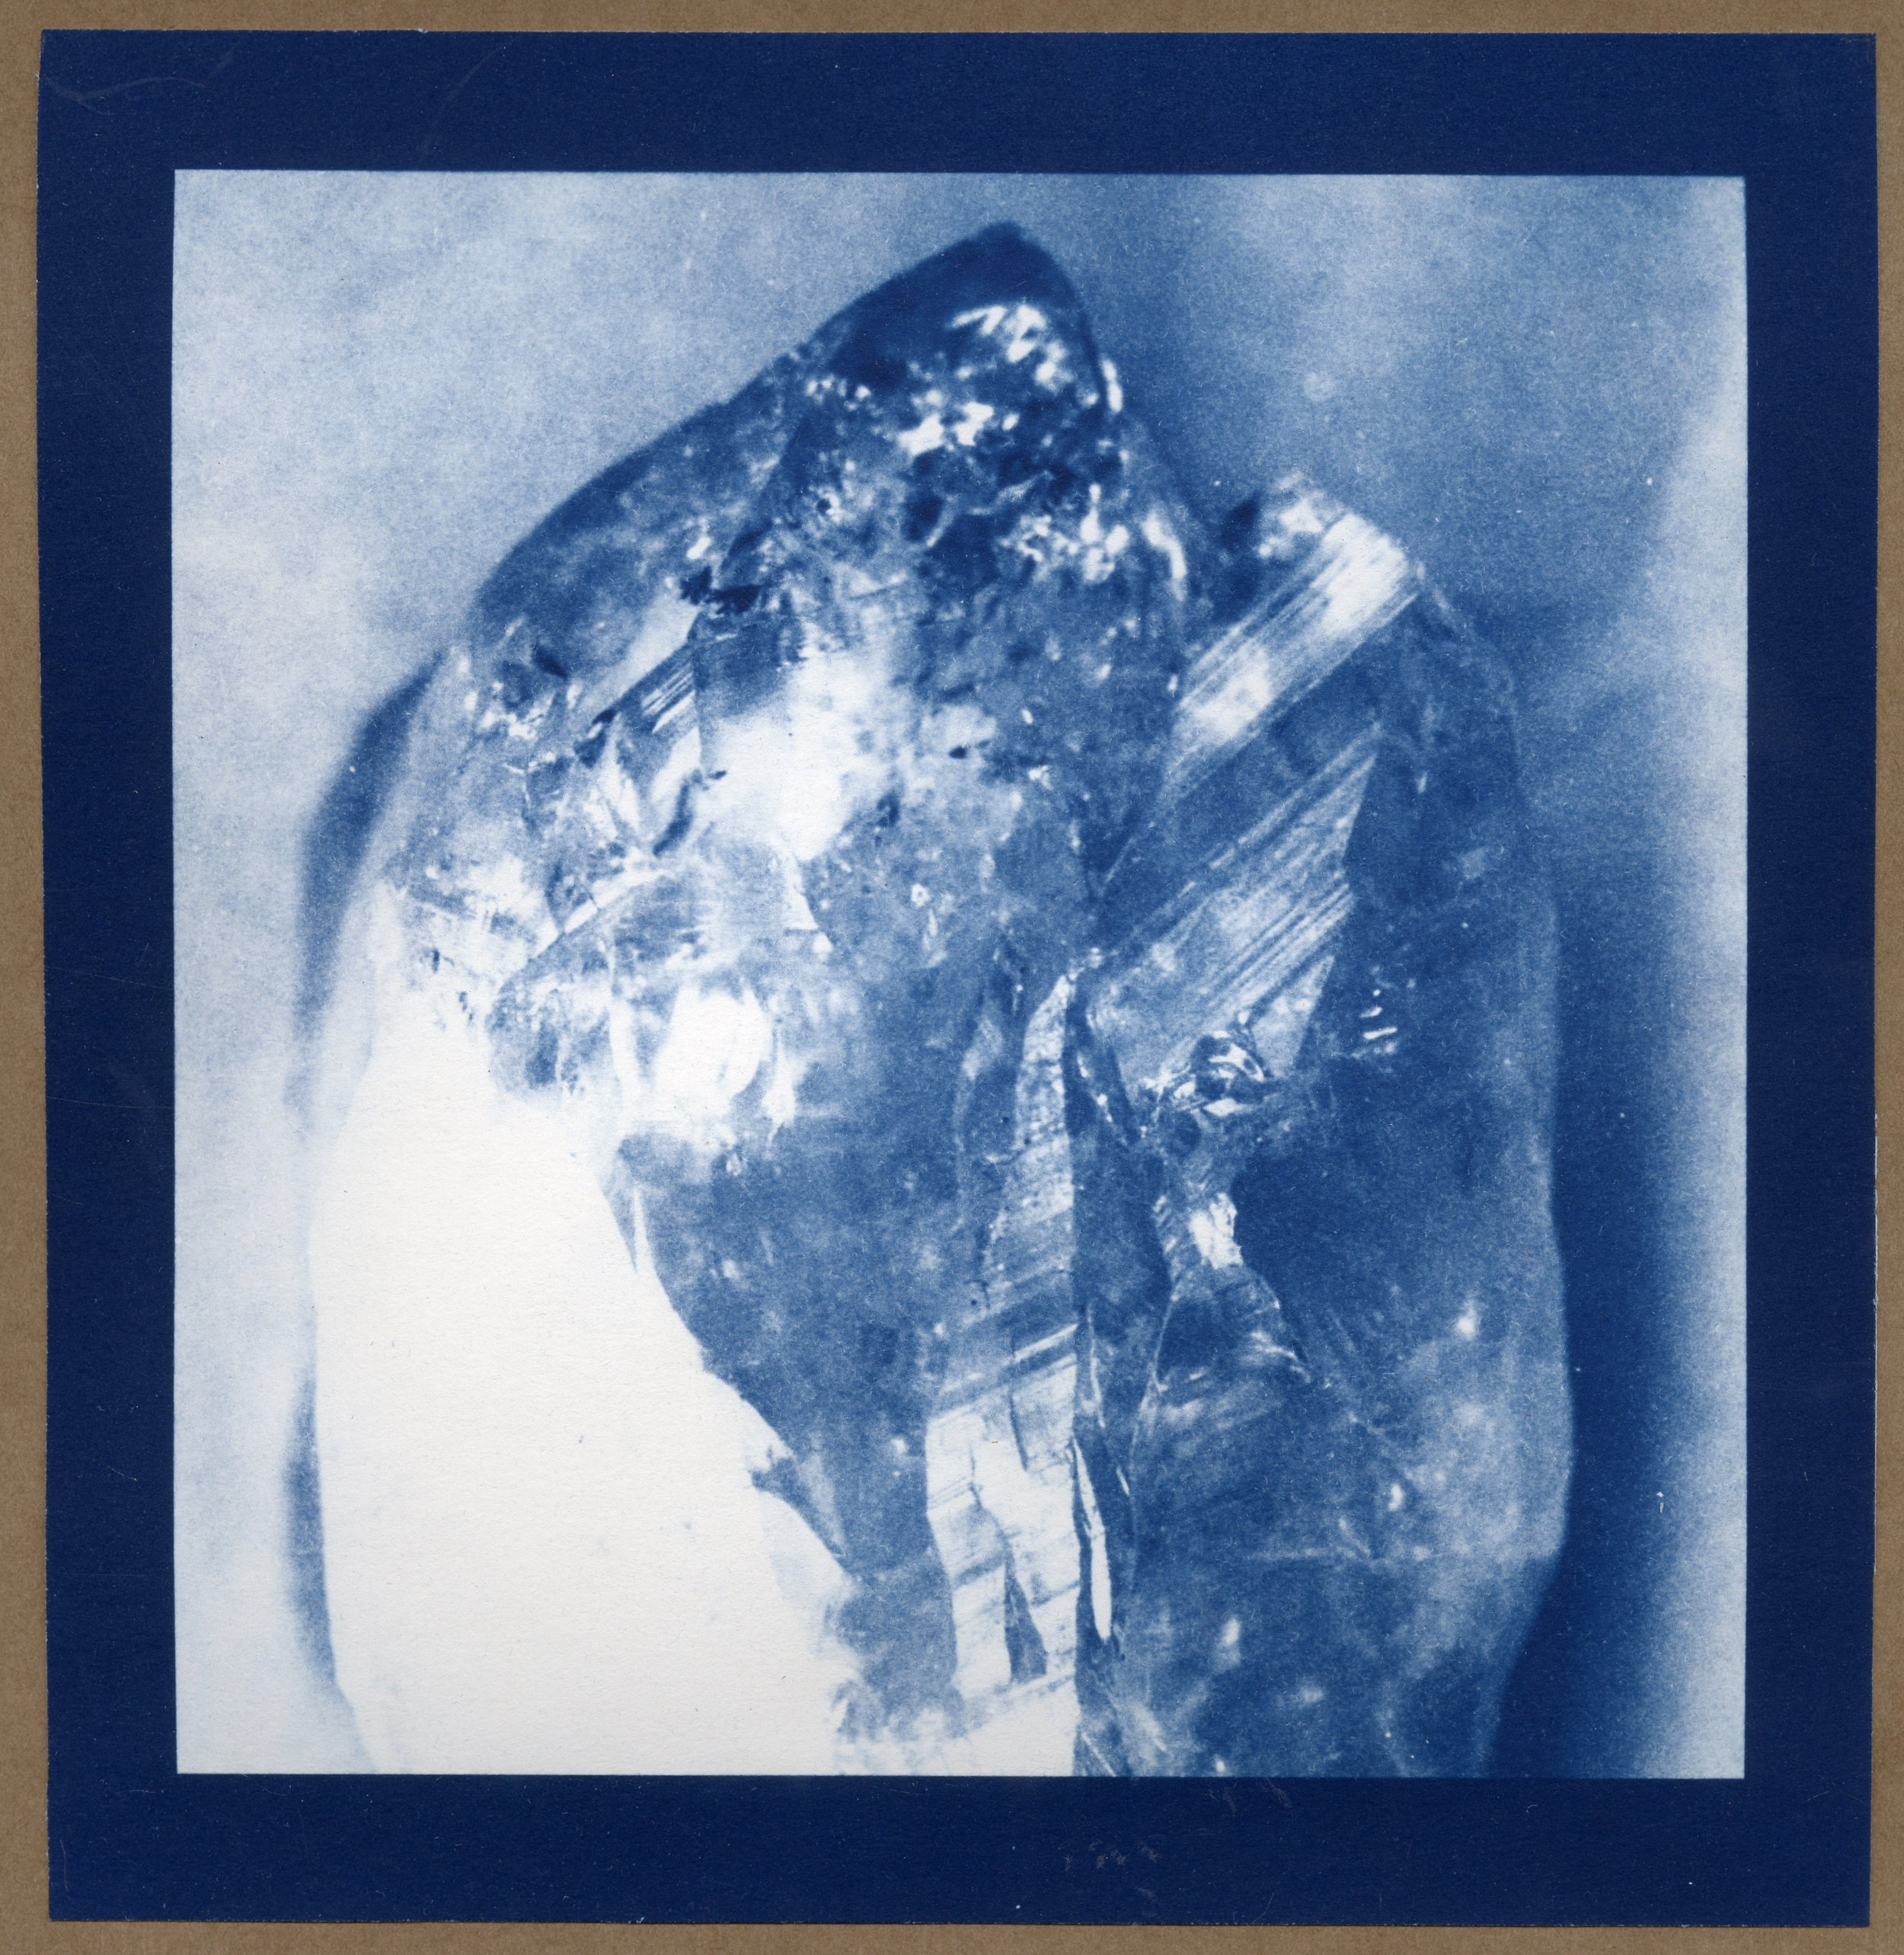 Cyanotypes are a form of photography that combines energy and art, using sunlight to create an image on the page.